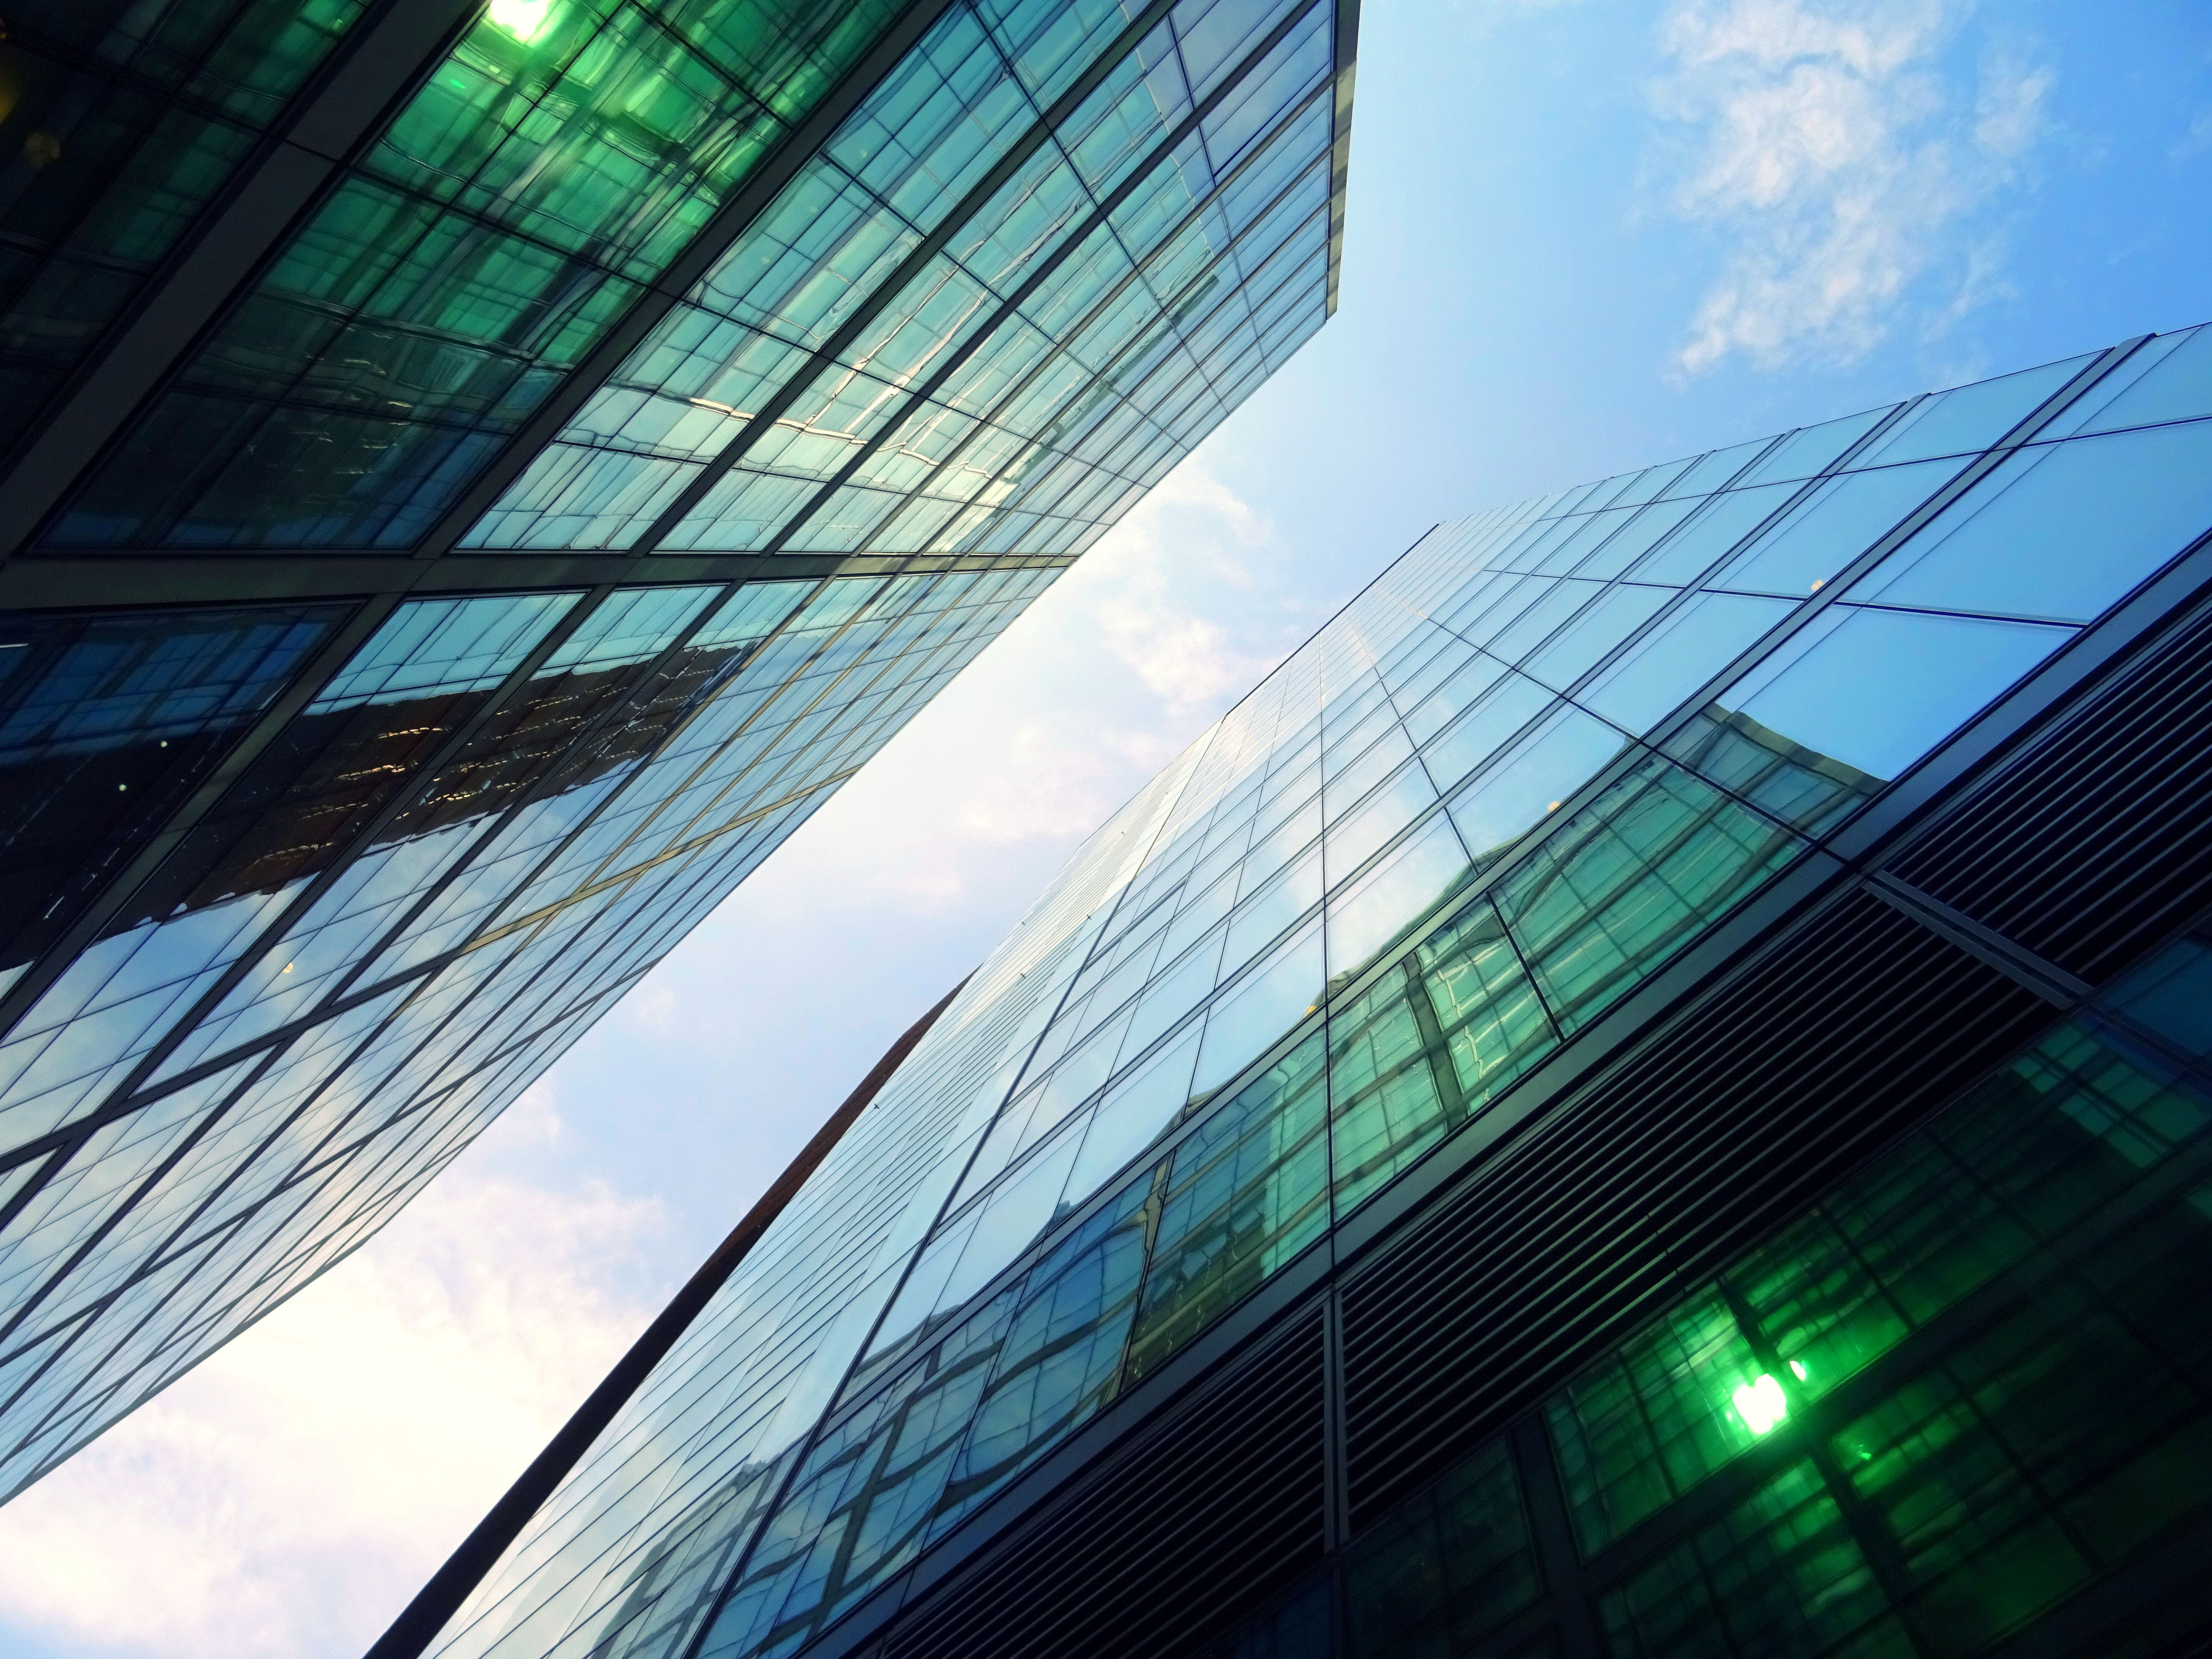 Low-angle Photography of Two Green Curtain Buildings